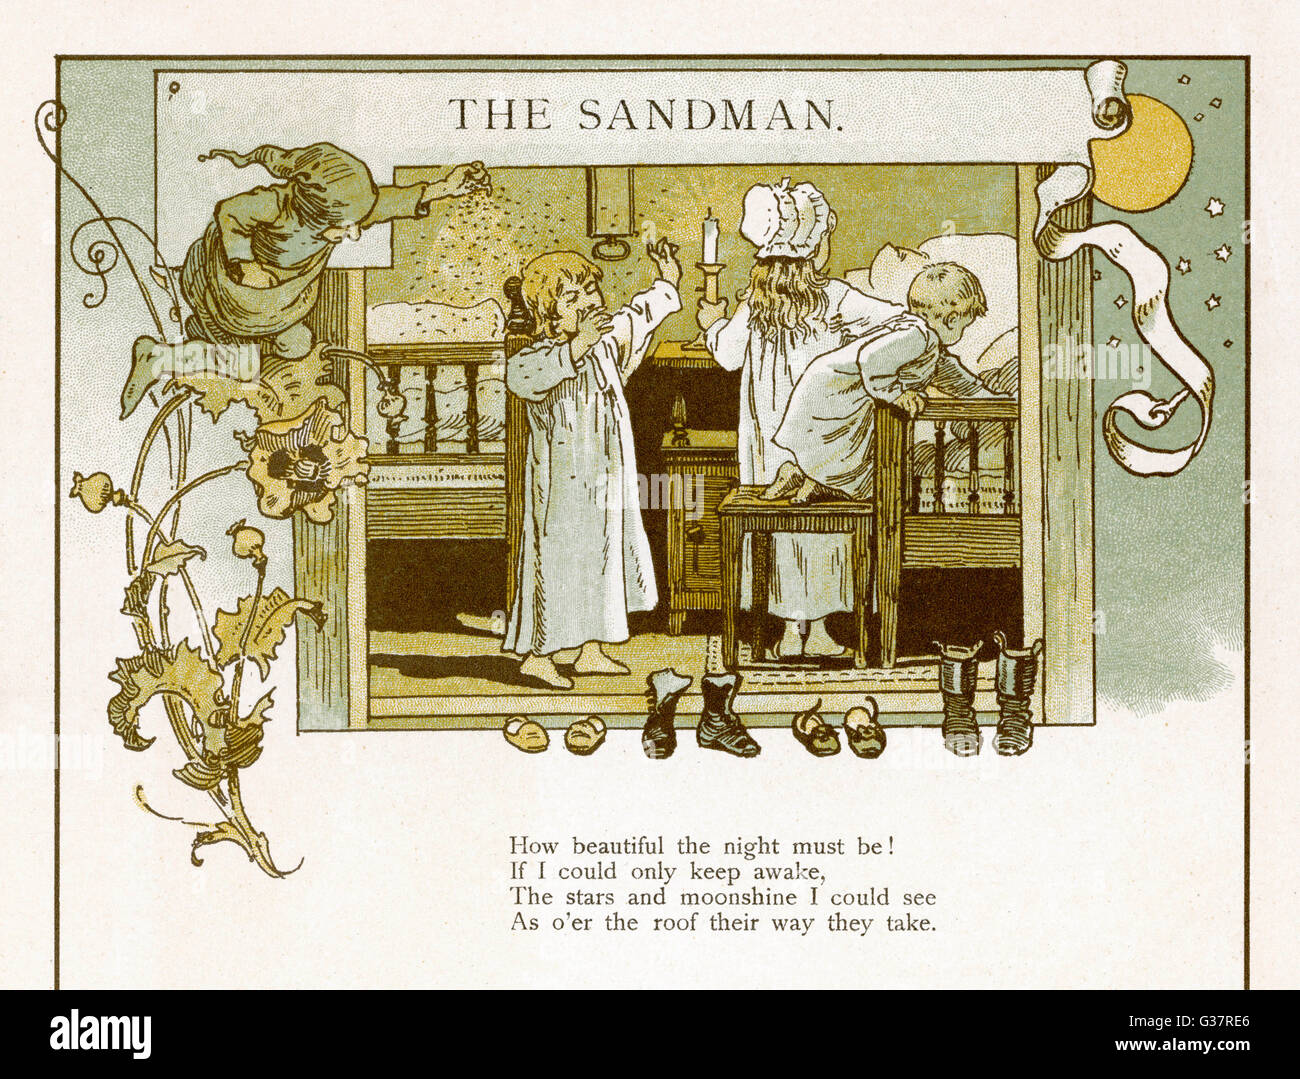 Three children go to their  beds, encouraged by The  Sandman        Date: 1893 - Stock Image